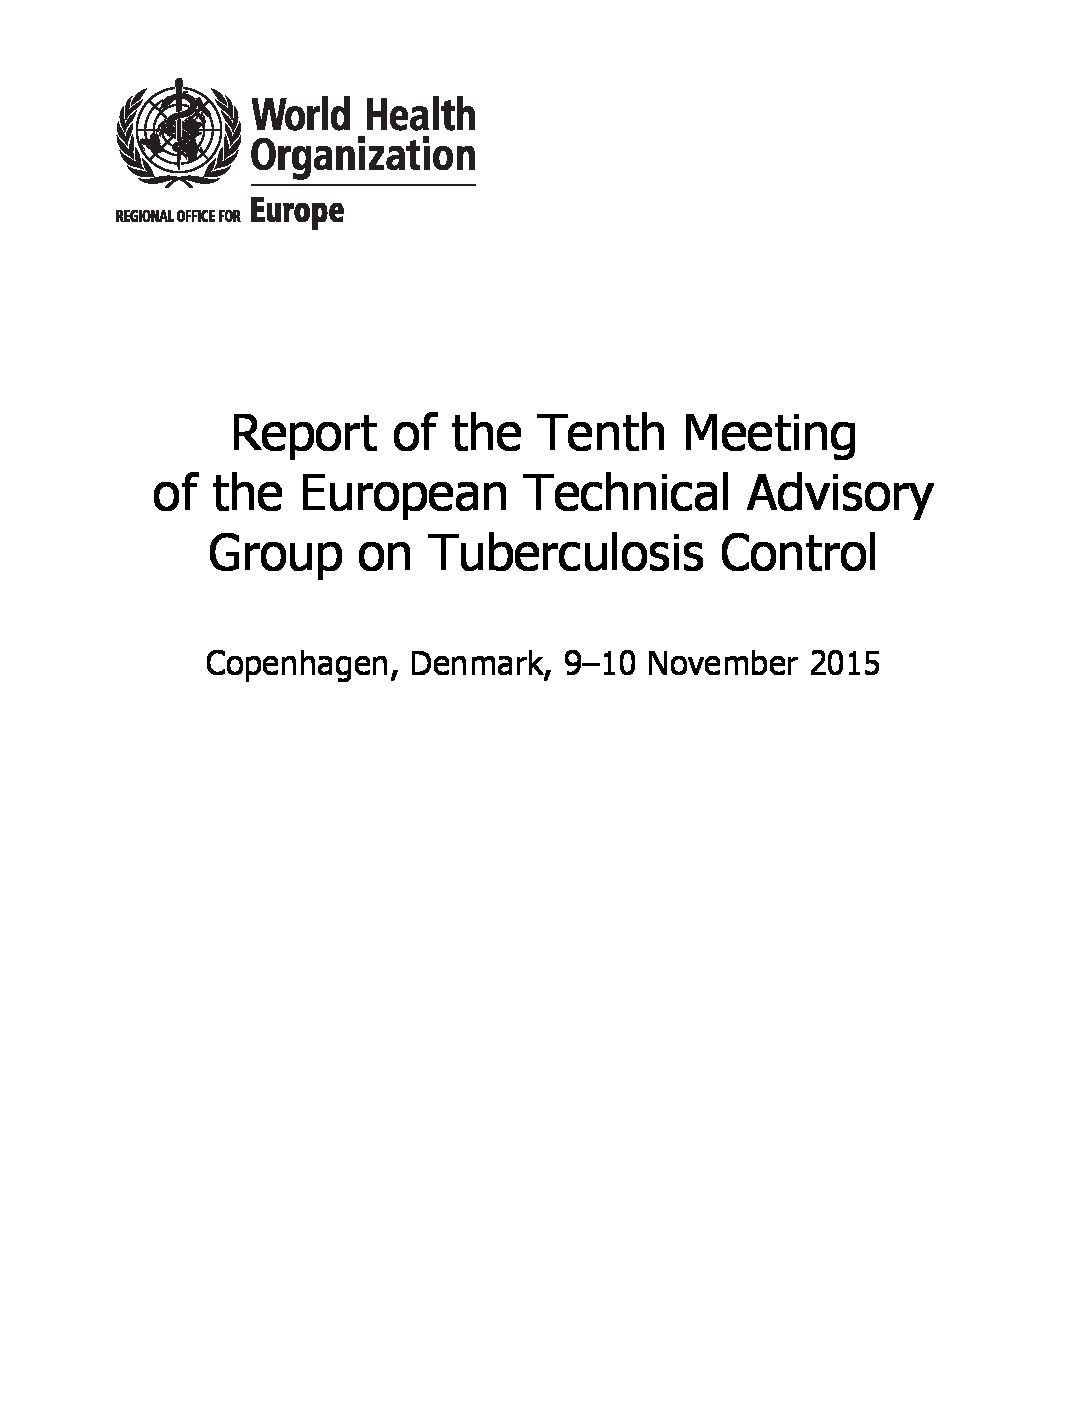 Report of the tenth meeting of the European technical advisory group on tuberculosis control. 2015.